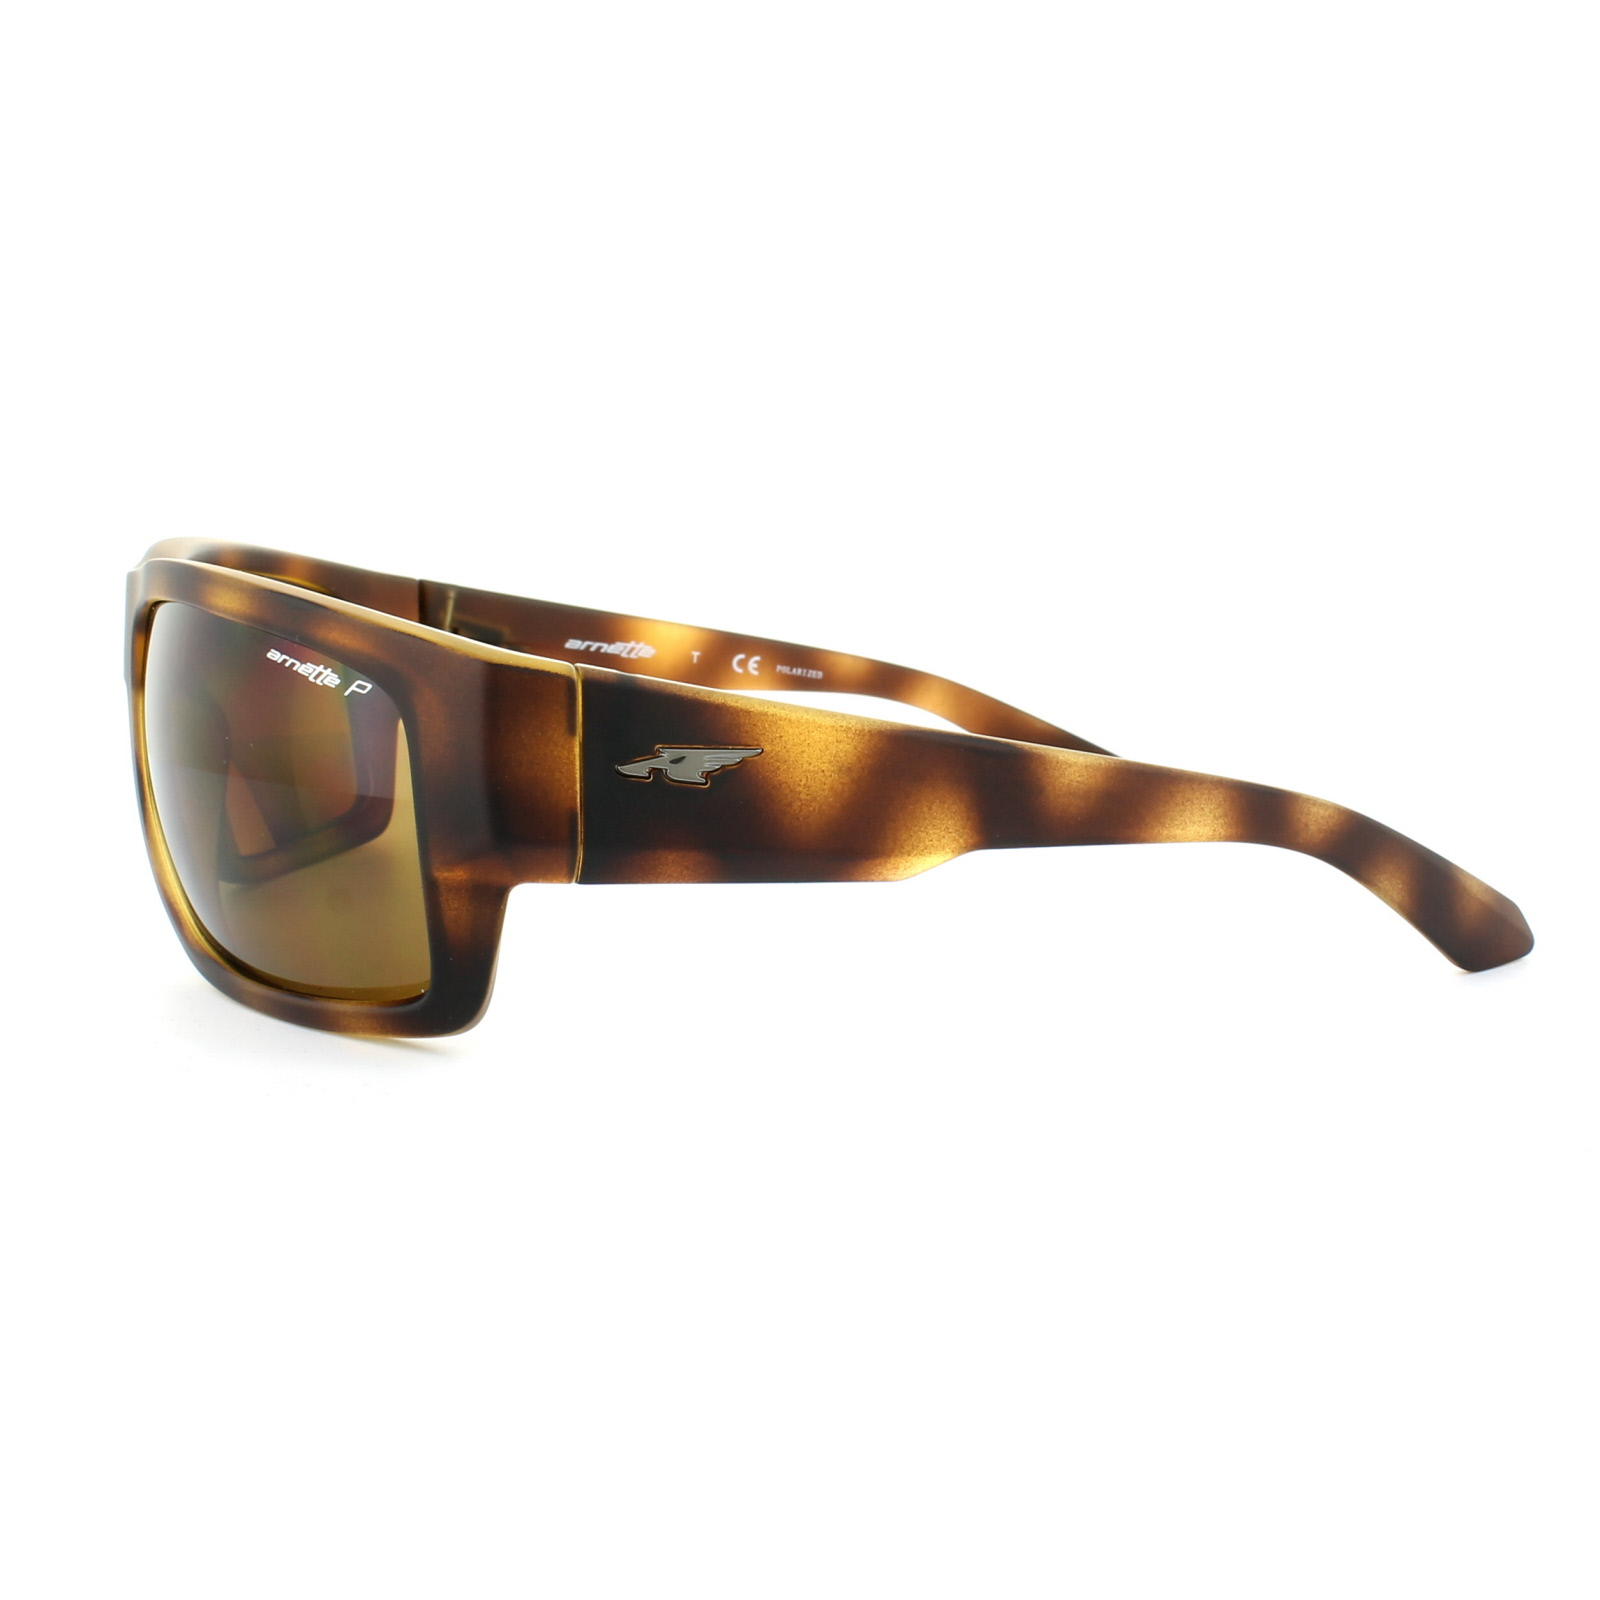 5e0cc3c1c3 Cheap Arnette 4221 Grifter Sunglasses - Discounted Sunglasses